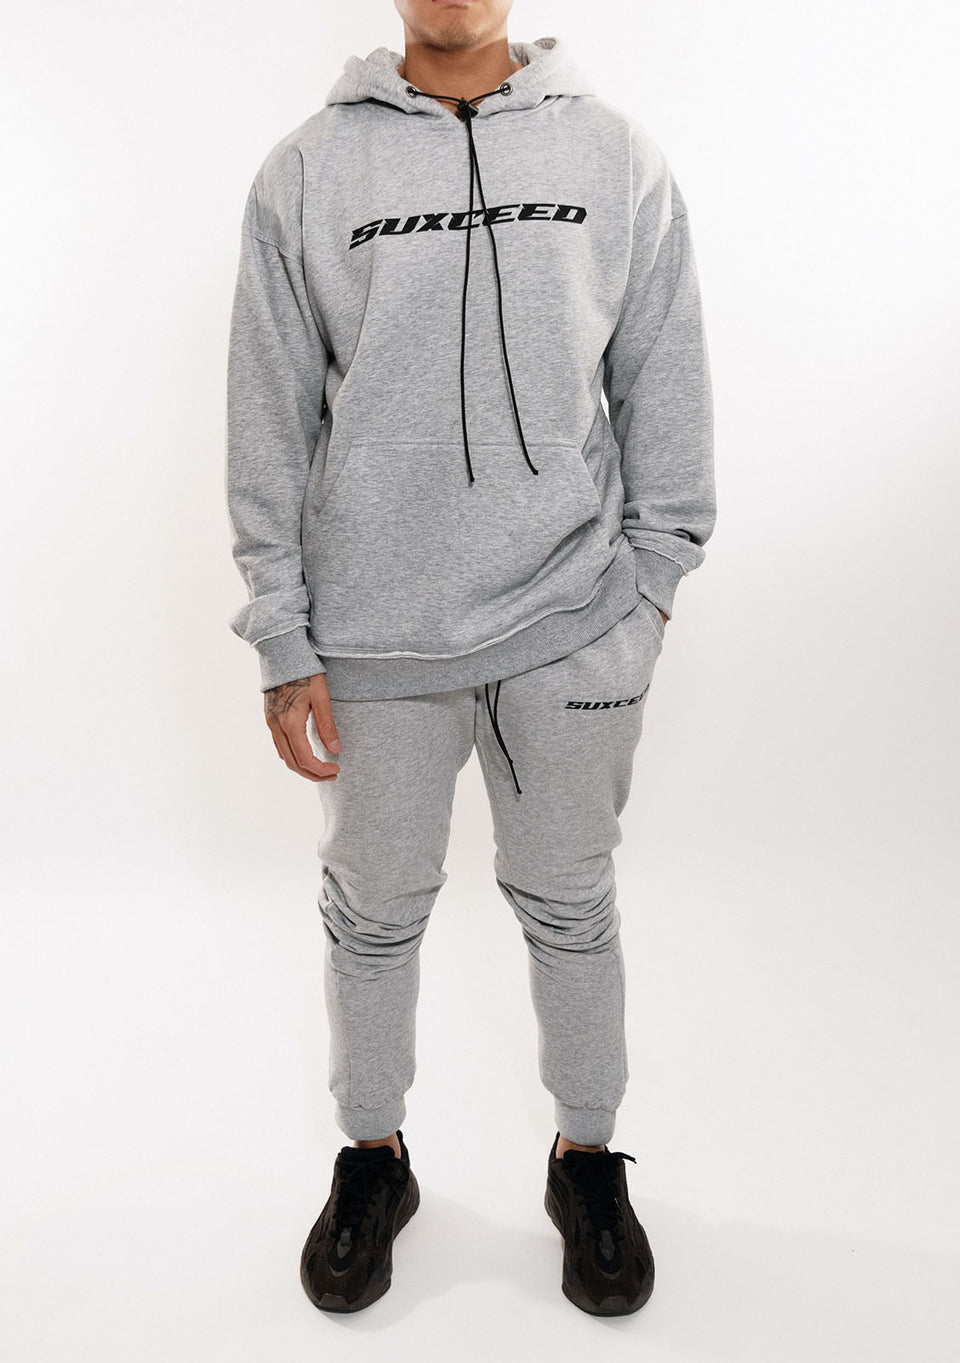 Suxceed Reflekt Hoody (GREY)